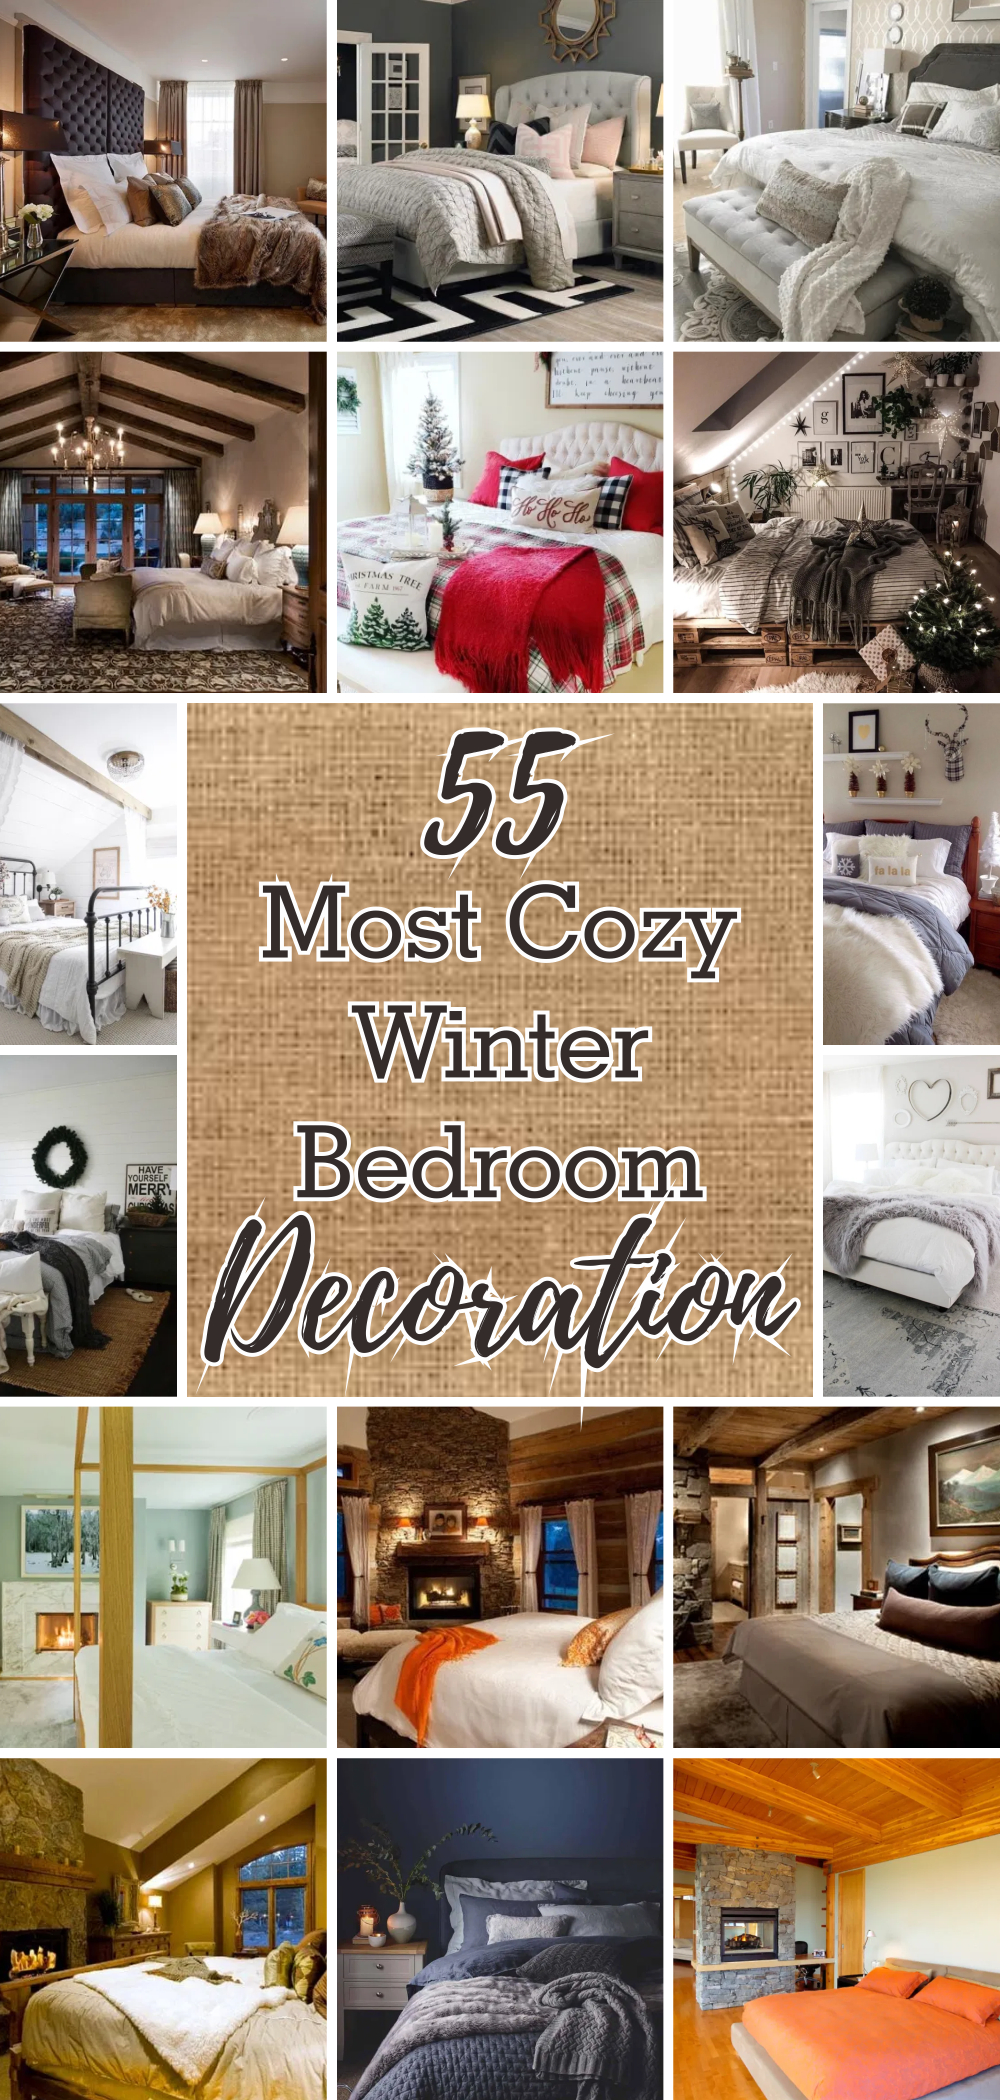 55 most cozy winter bedroom decoration 1